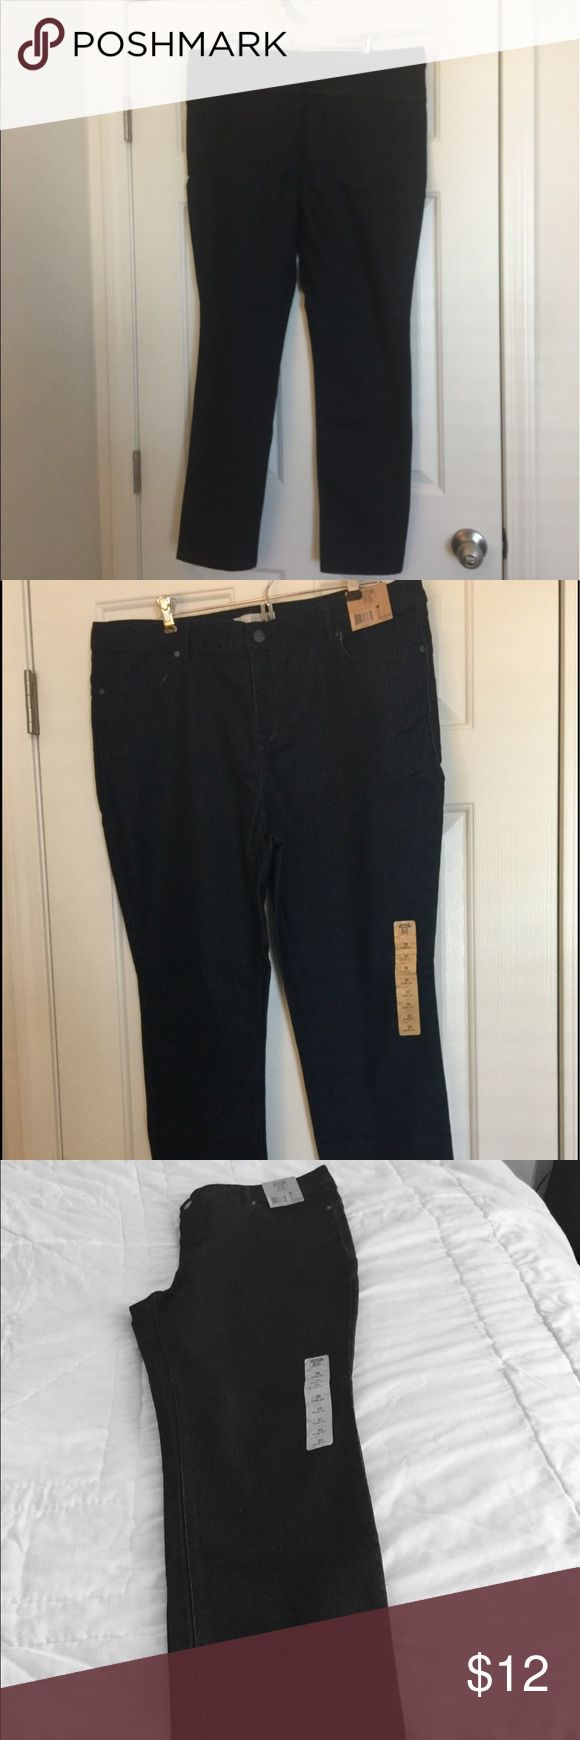 Slim fit jeans New black slim fit jeans. Converted size is 15/16. The jean length is 40 inches long. Route 66 Pants Skinny